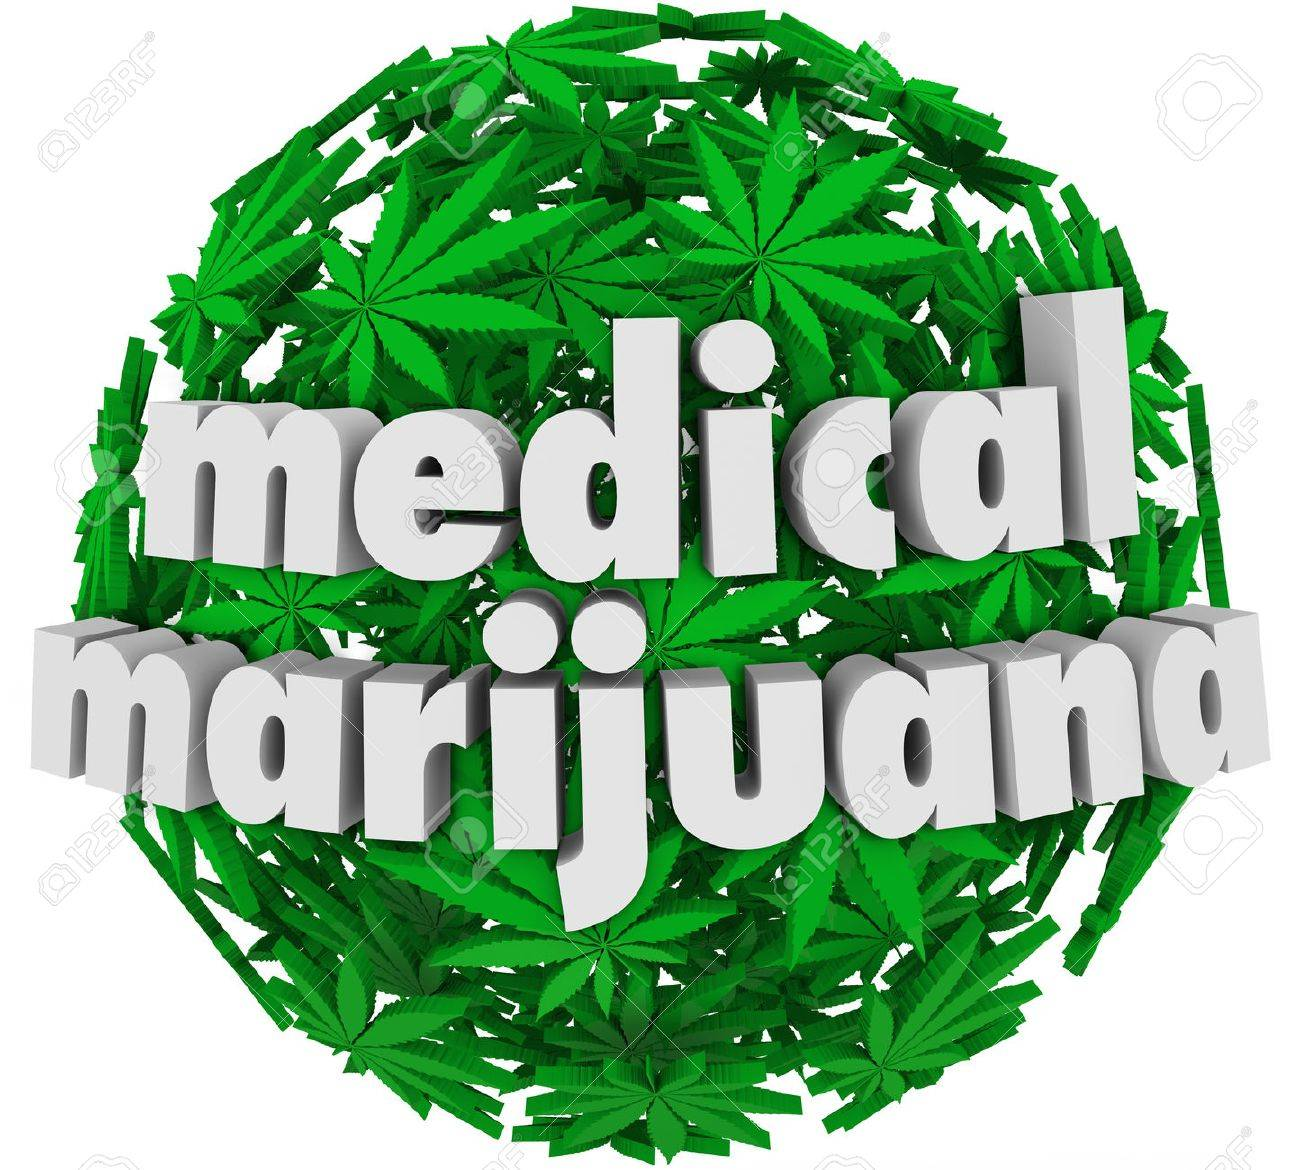 The words Medical Marijuana on a sphere of green pot leaves to advertise a legal pharmacy offering mj as a prescription for various health conditions Stock Photo - 22869430